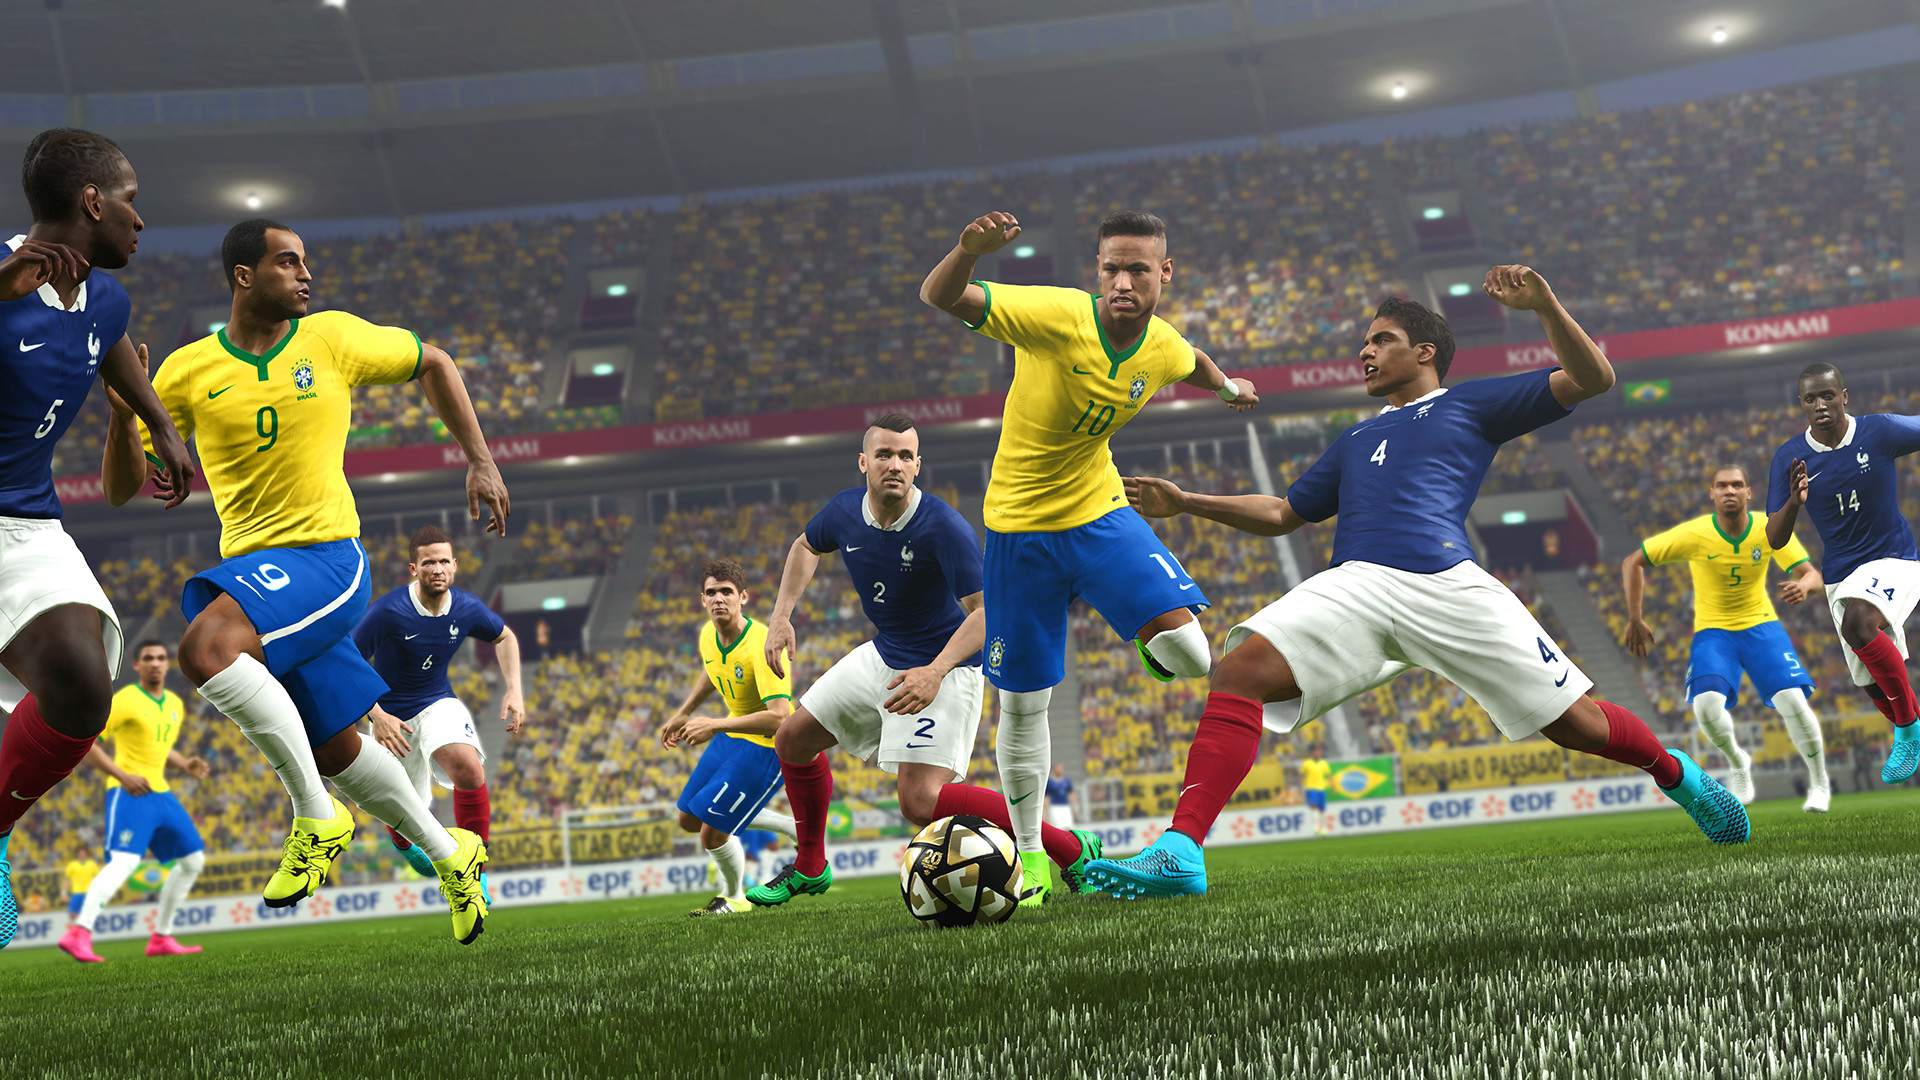 Pro Evolution Soccer 2016 - PC Demo Now Available - DSOGaming